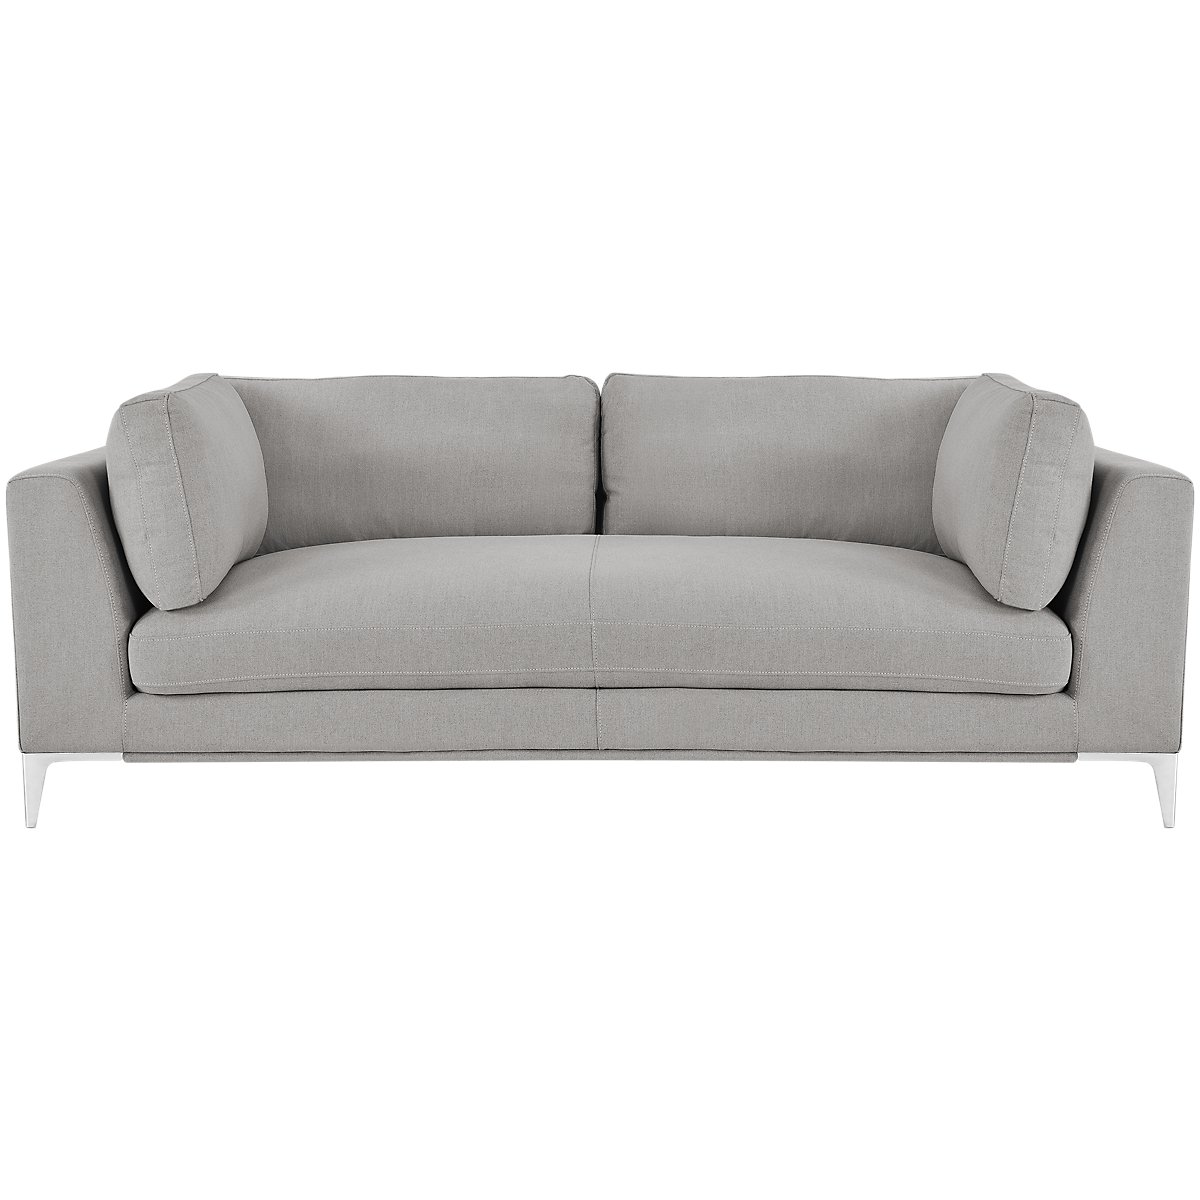 City Furniture: Madison Gray Fabric Small Right Chaise Sectional